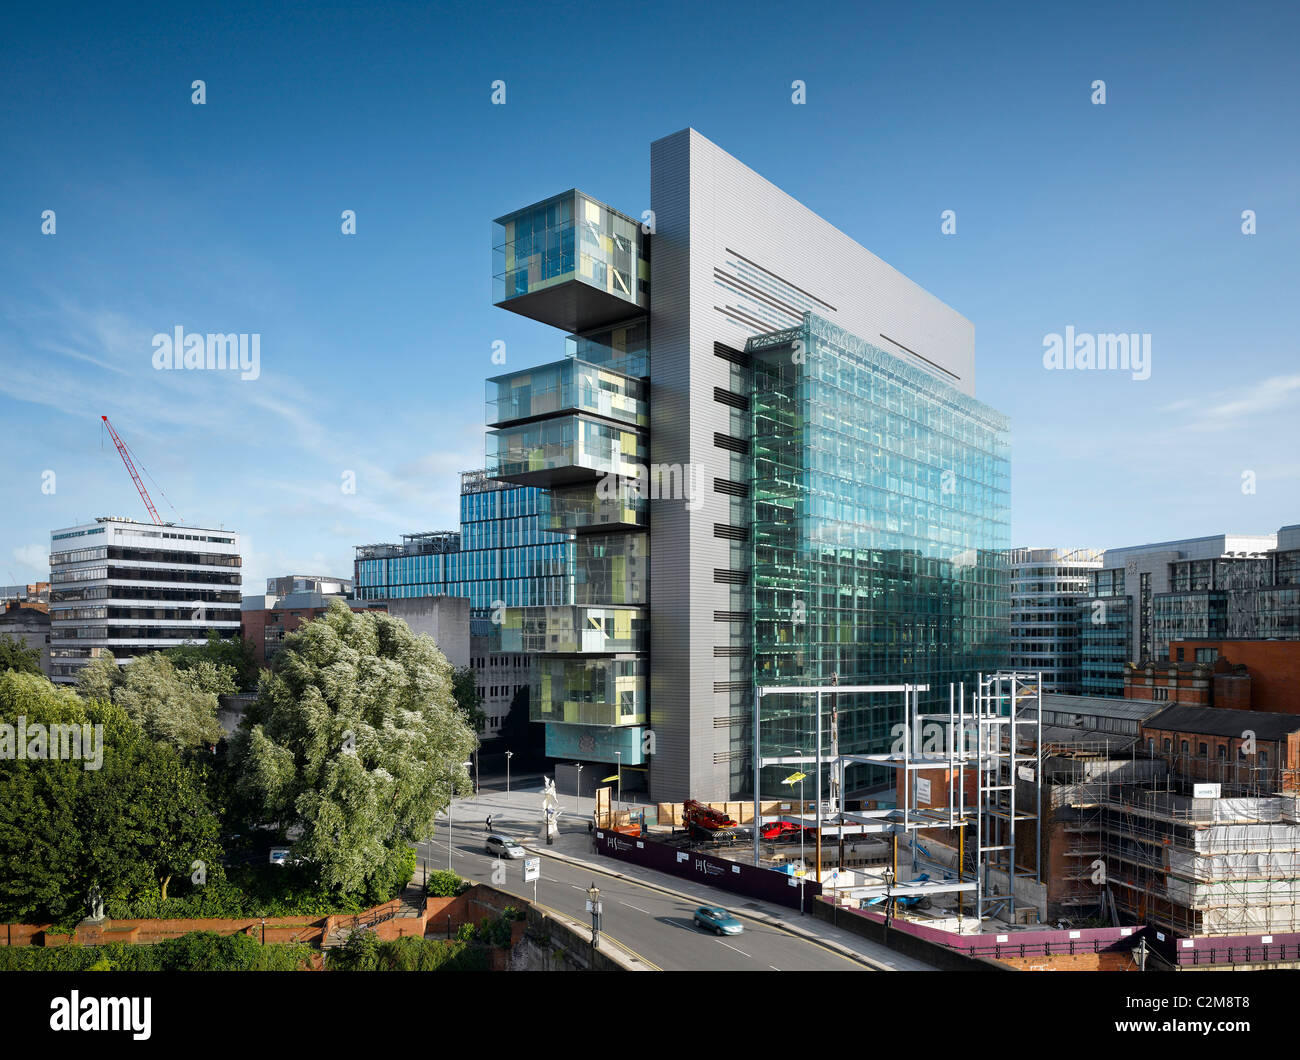 Manchester Civil Justice Centre - Stock Image